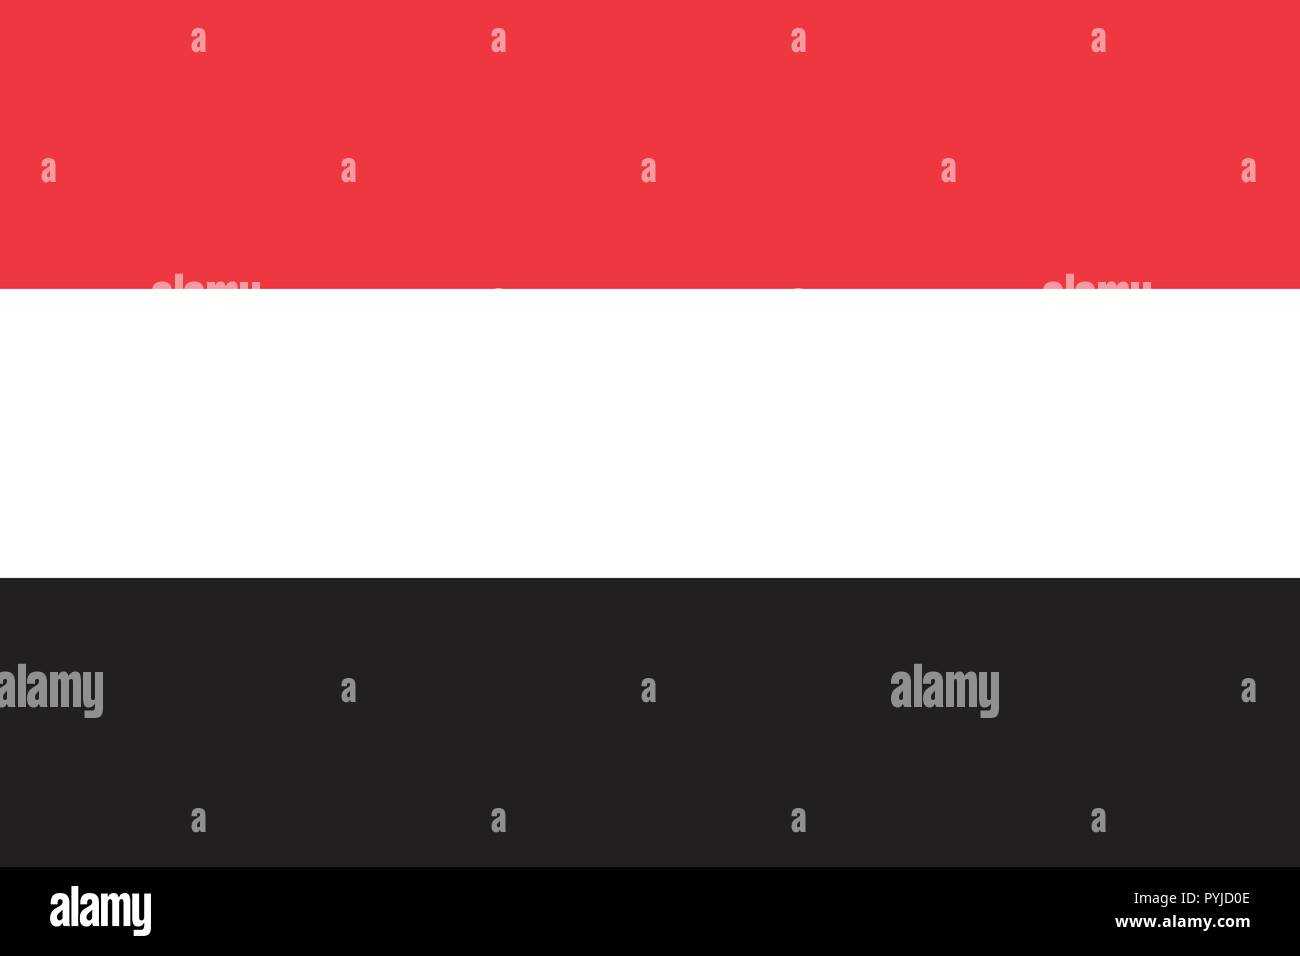 Vector image for Yemen flag. Based on the official and exact Yemeni flag dimensions (3:2) & colors (032C, White and Black) - Stock Vector